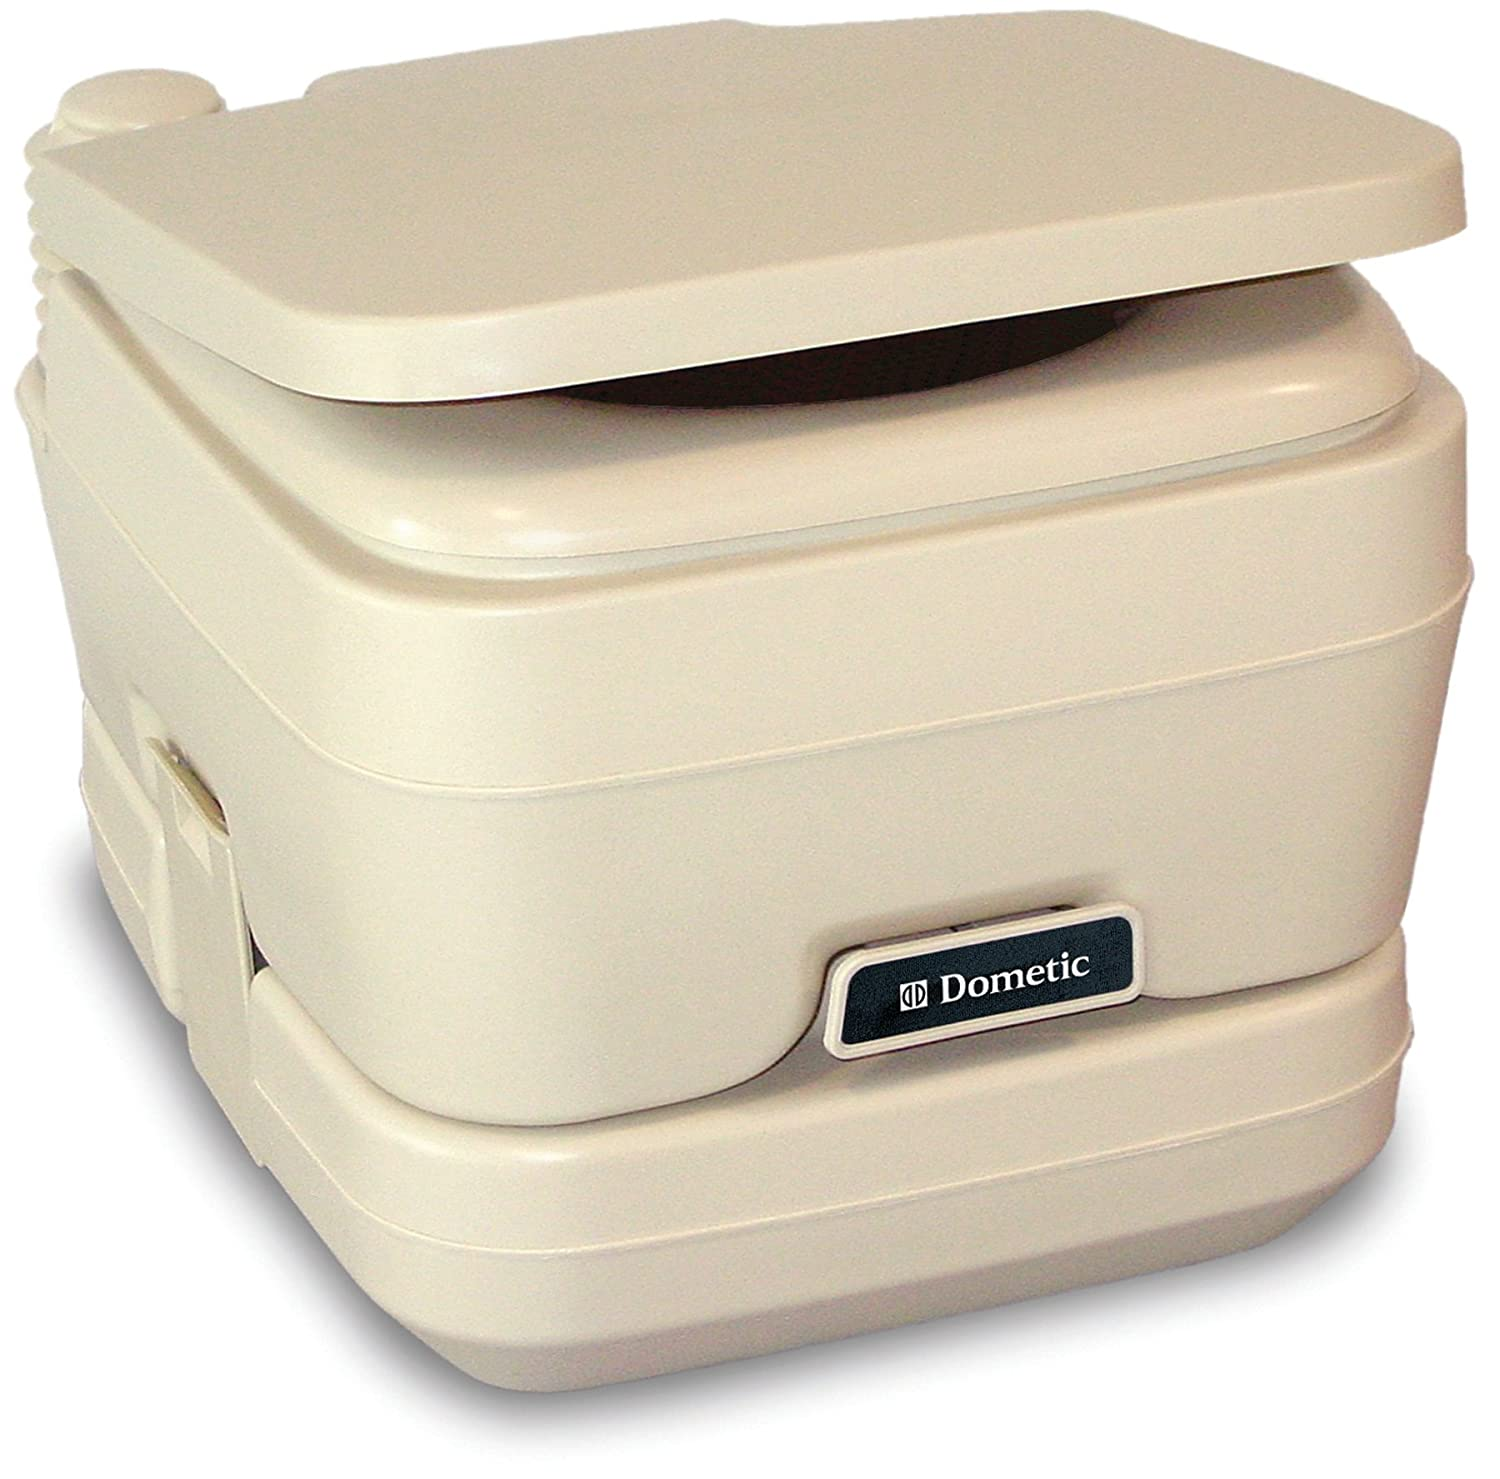 Dometic 301096202 Tan Portable Toilet